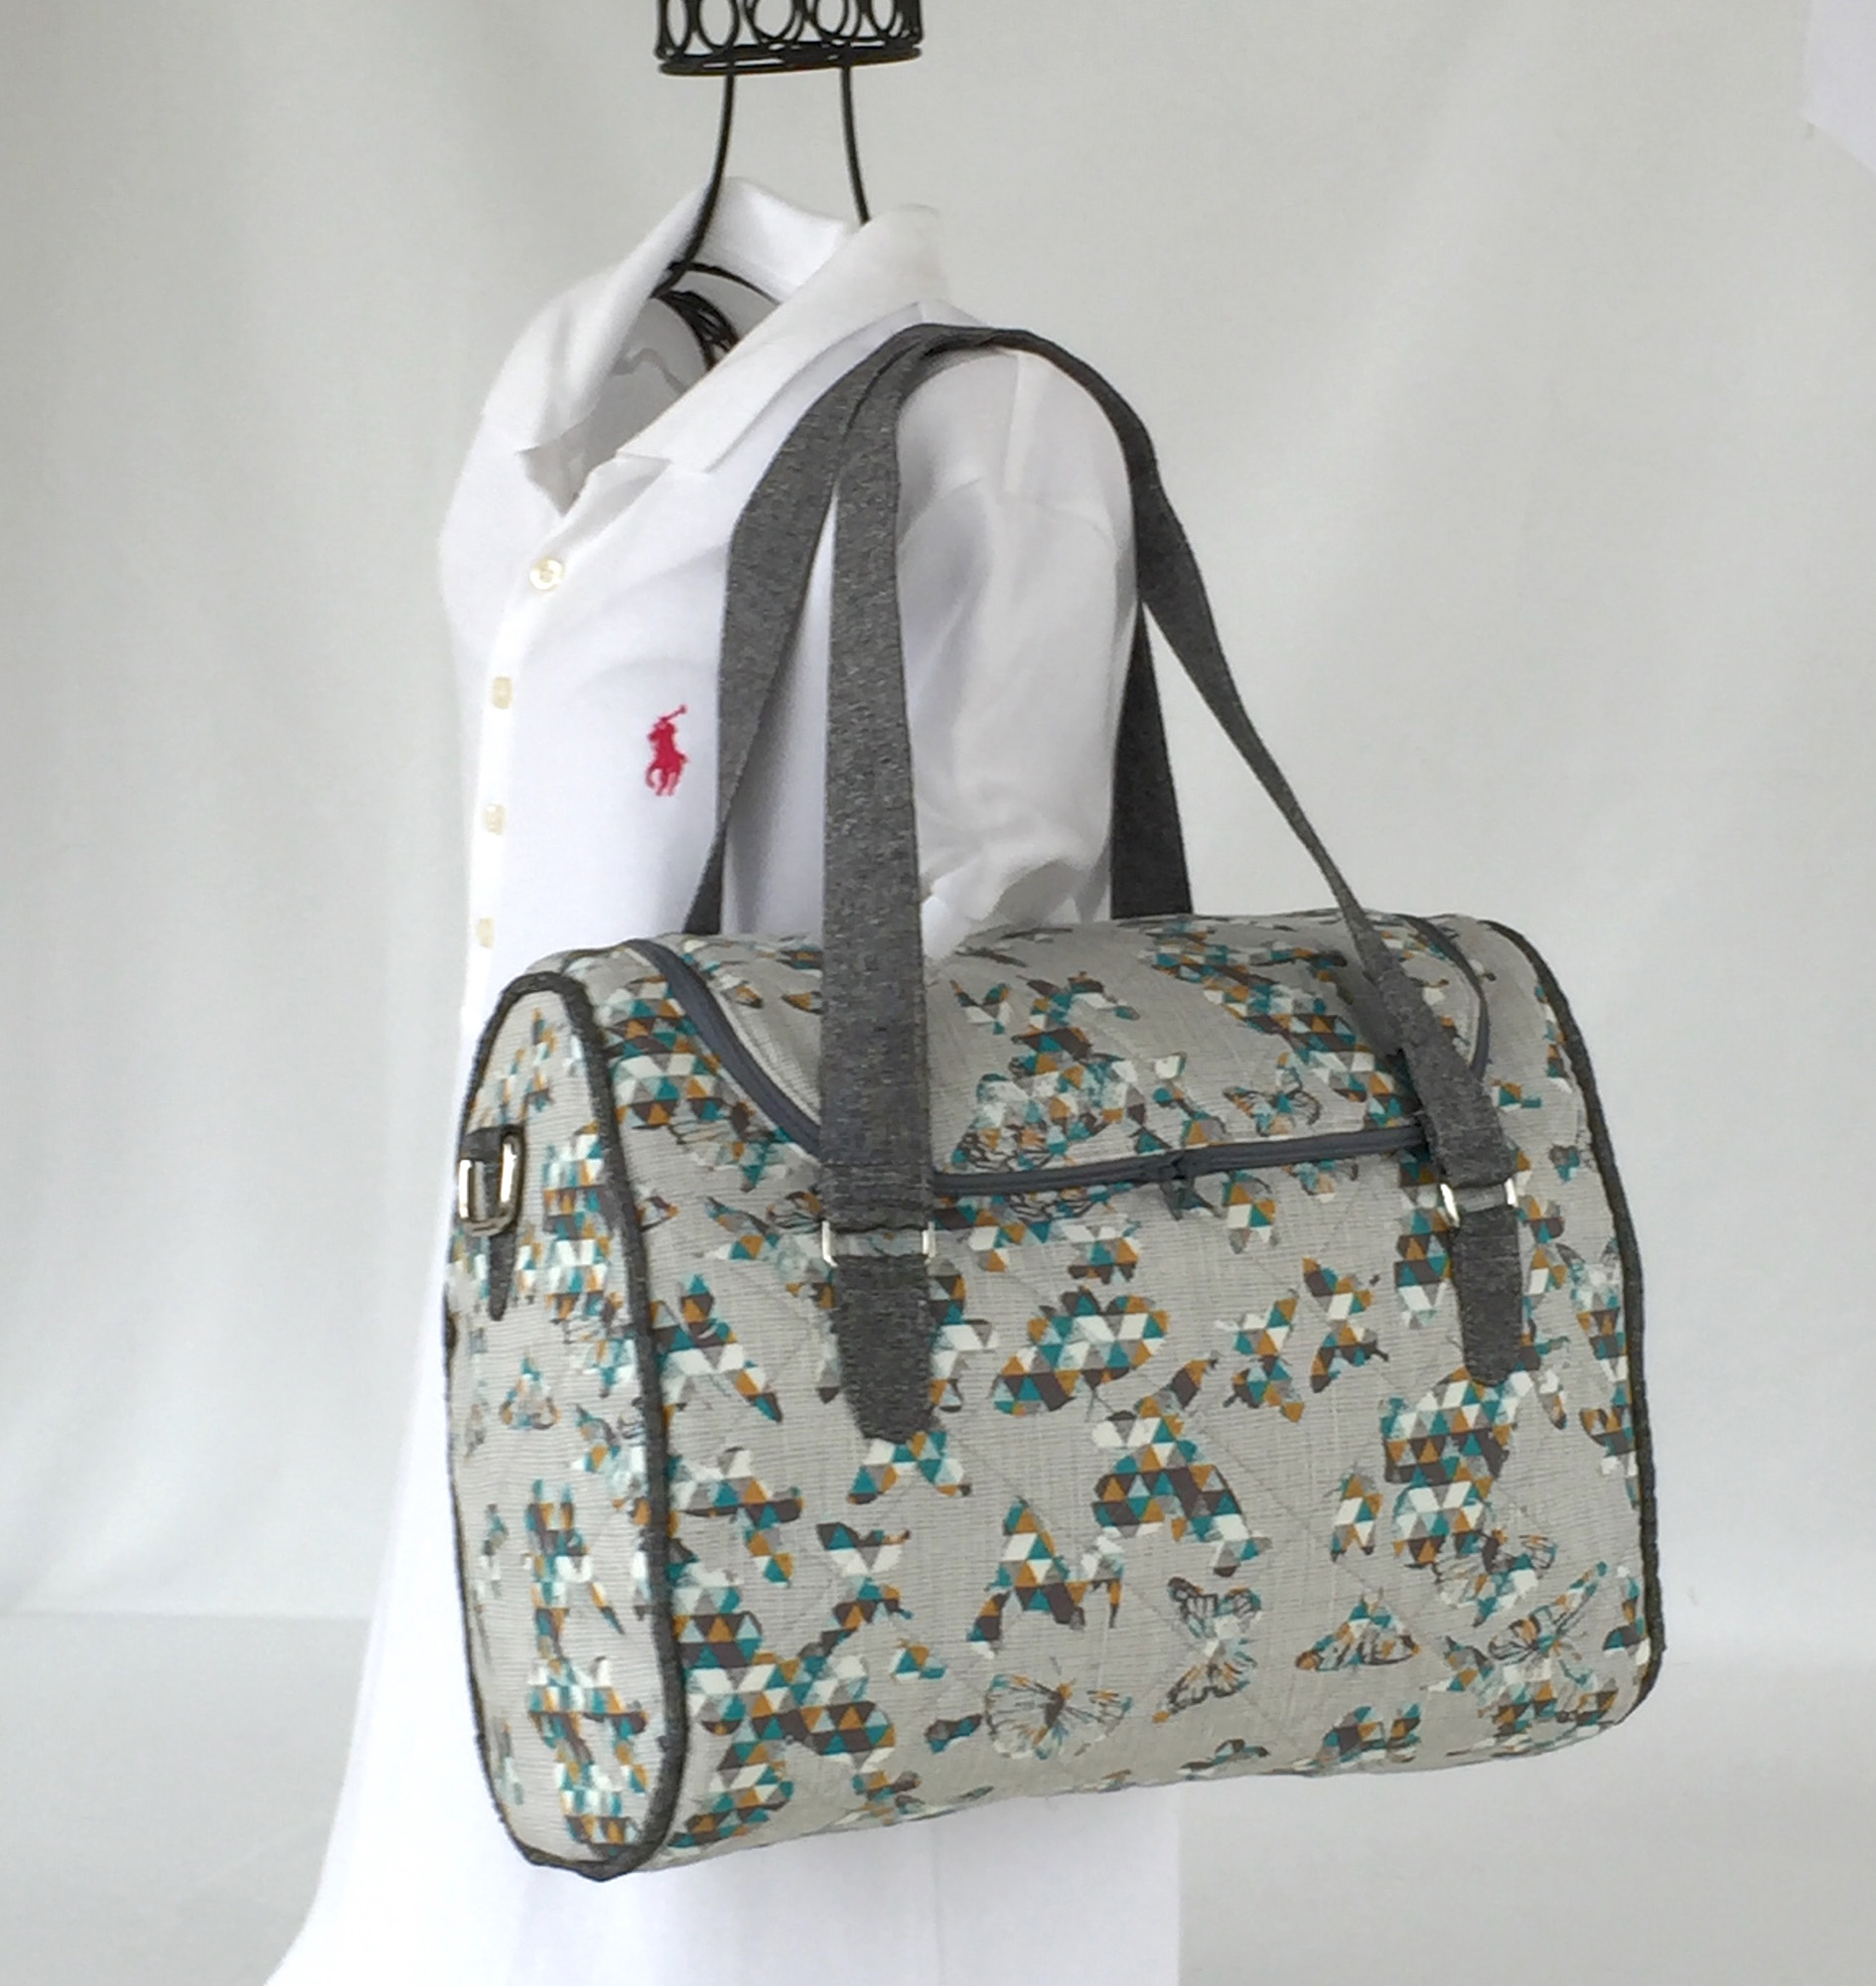 Sew Sweetness Tortoise Bag sewing pattern, sewn by Cindy of Raspberry Sunshine